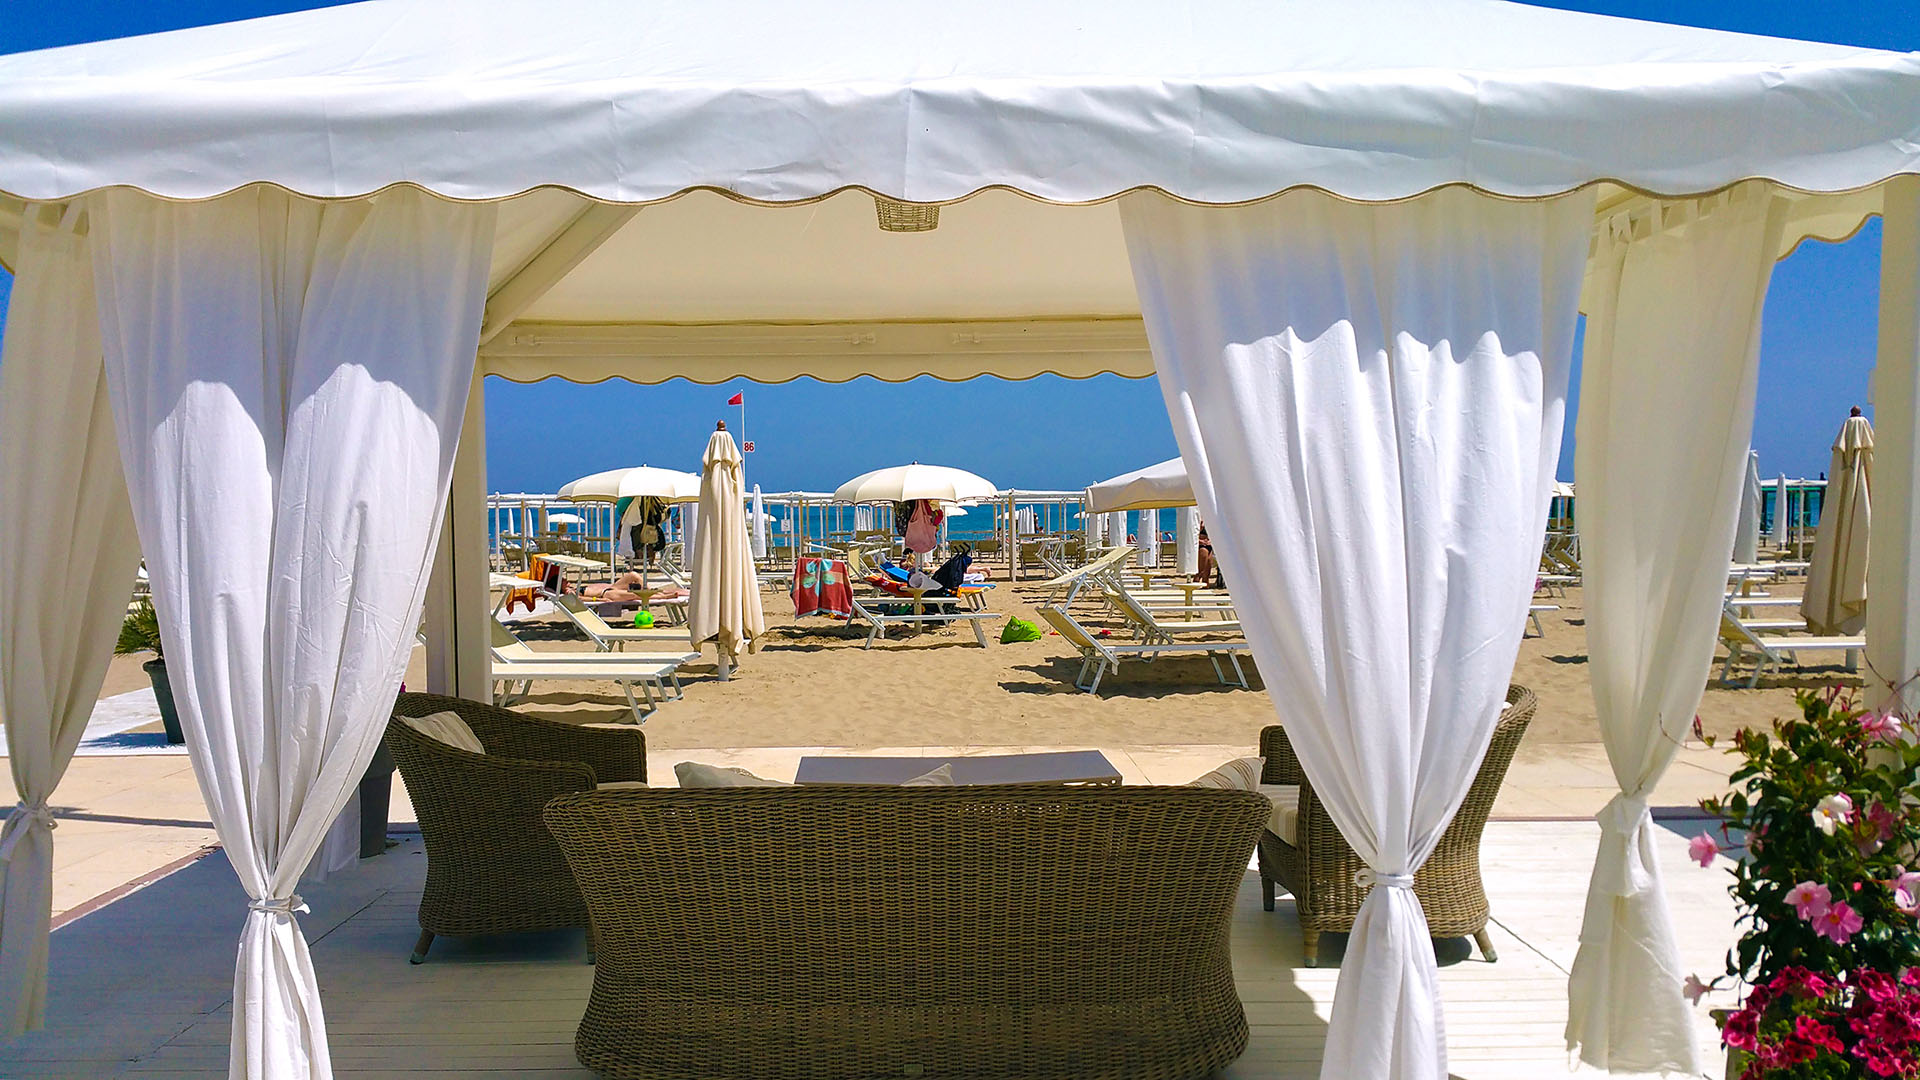 spiaggia_estate_gazebo_hd